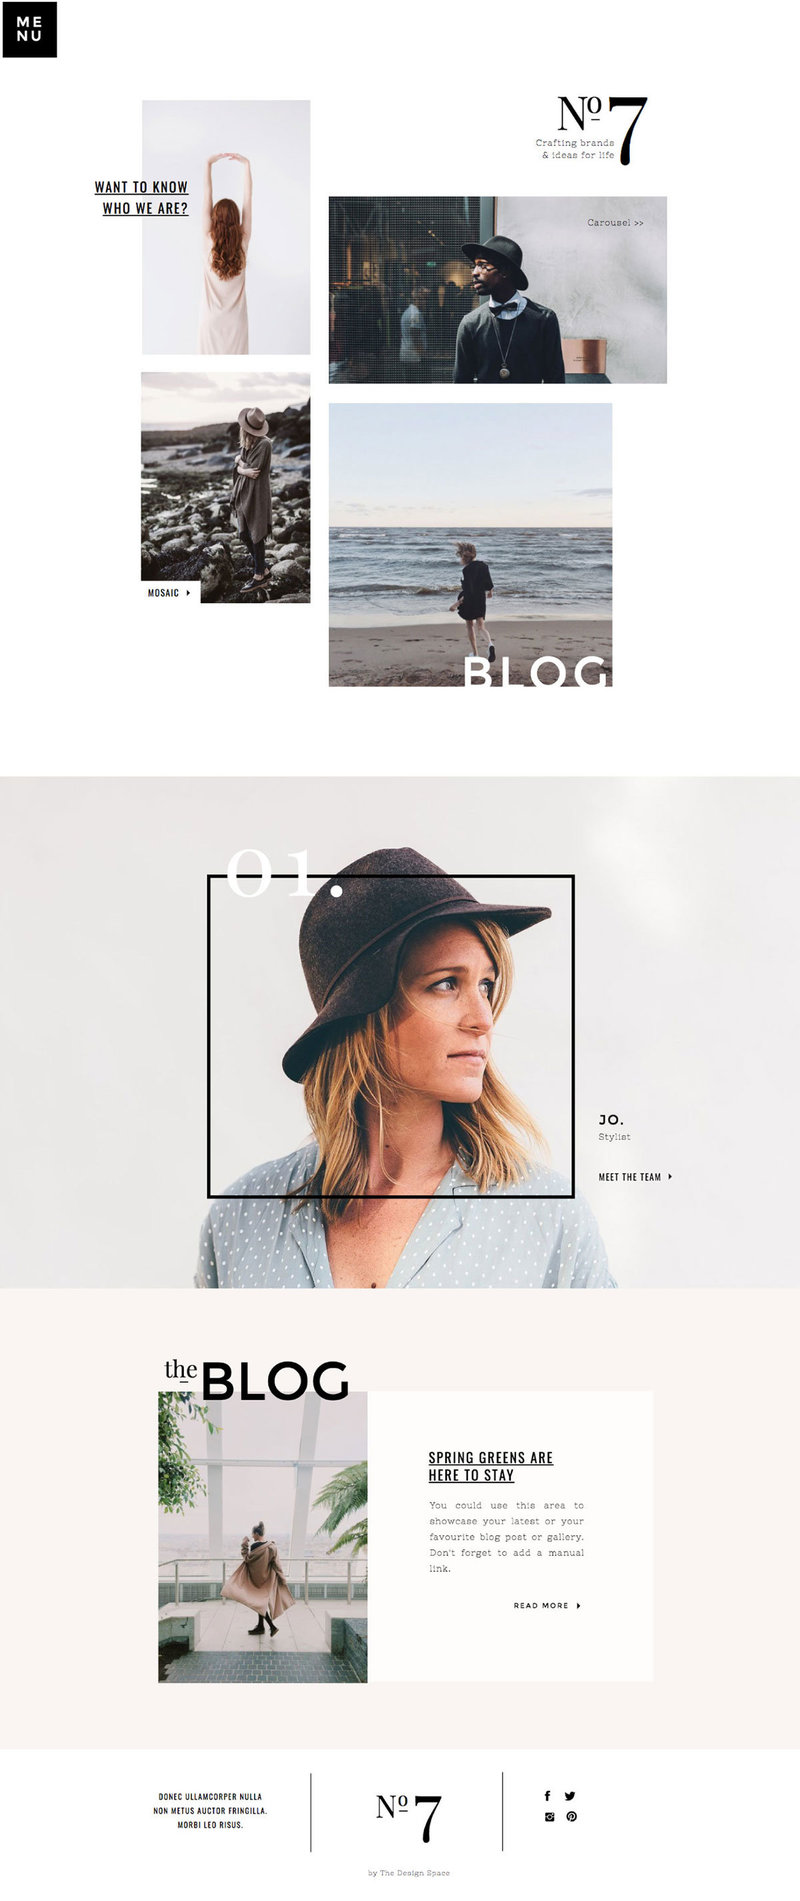 Design Space No 77 Showit Website Desktop Template